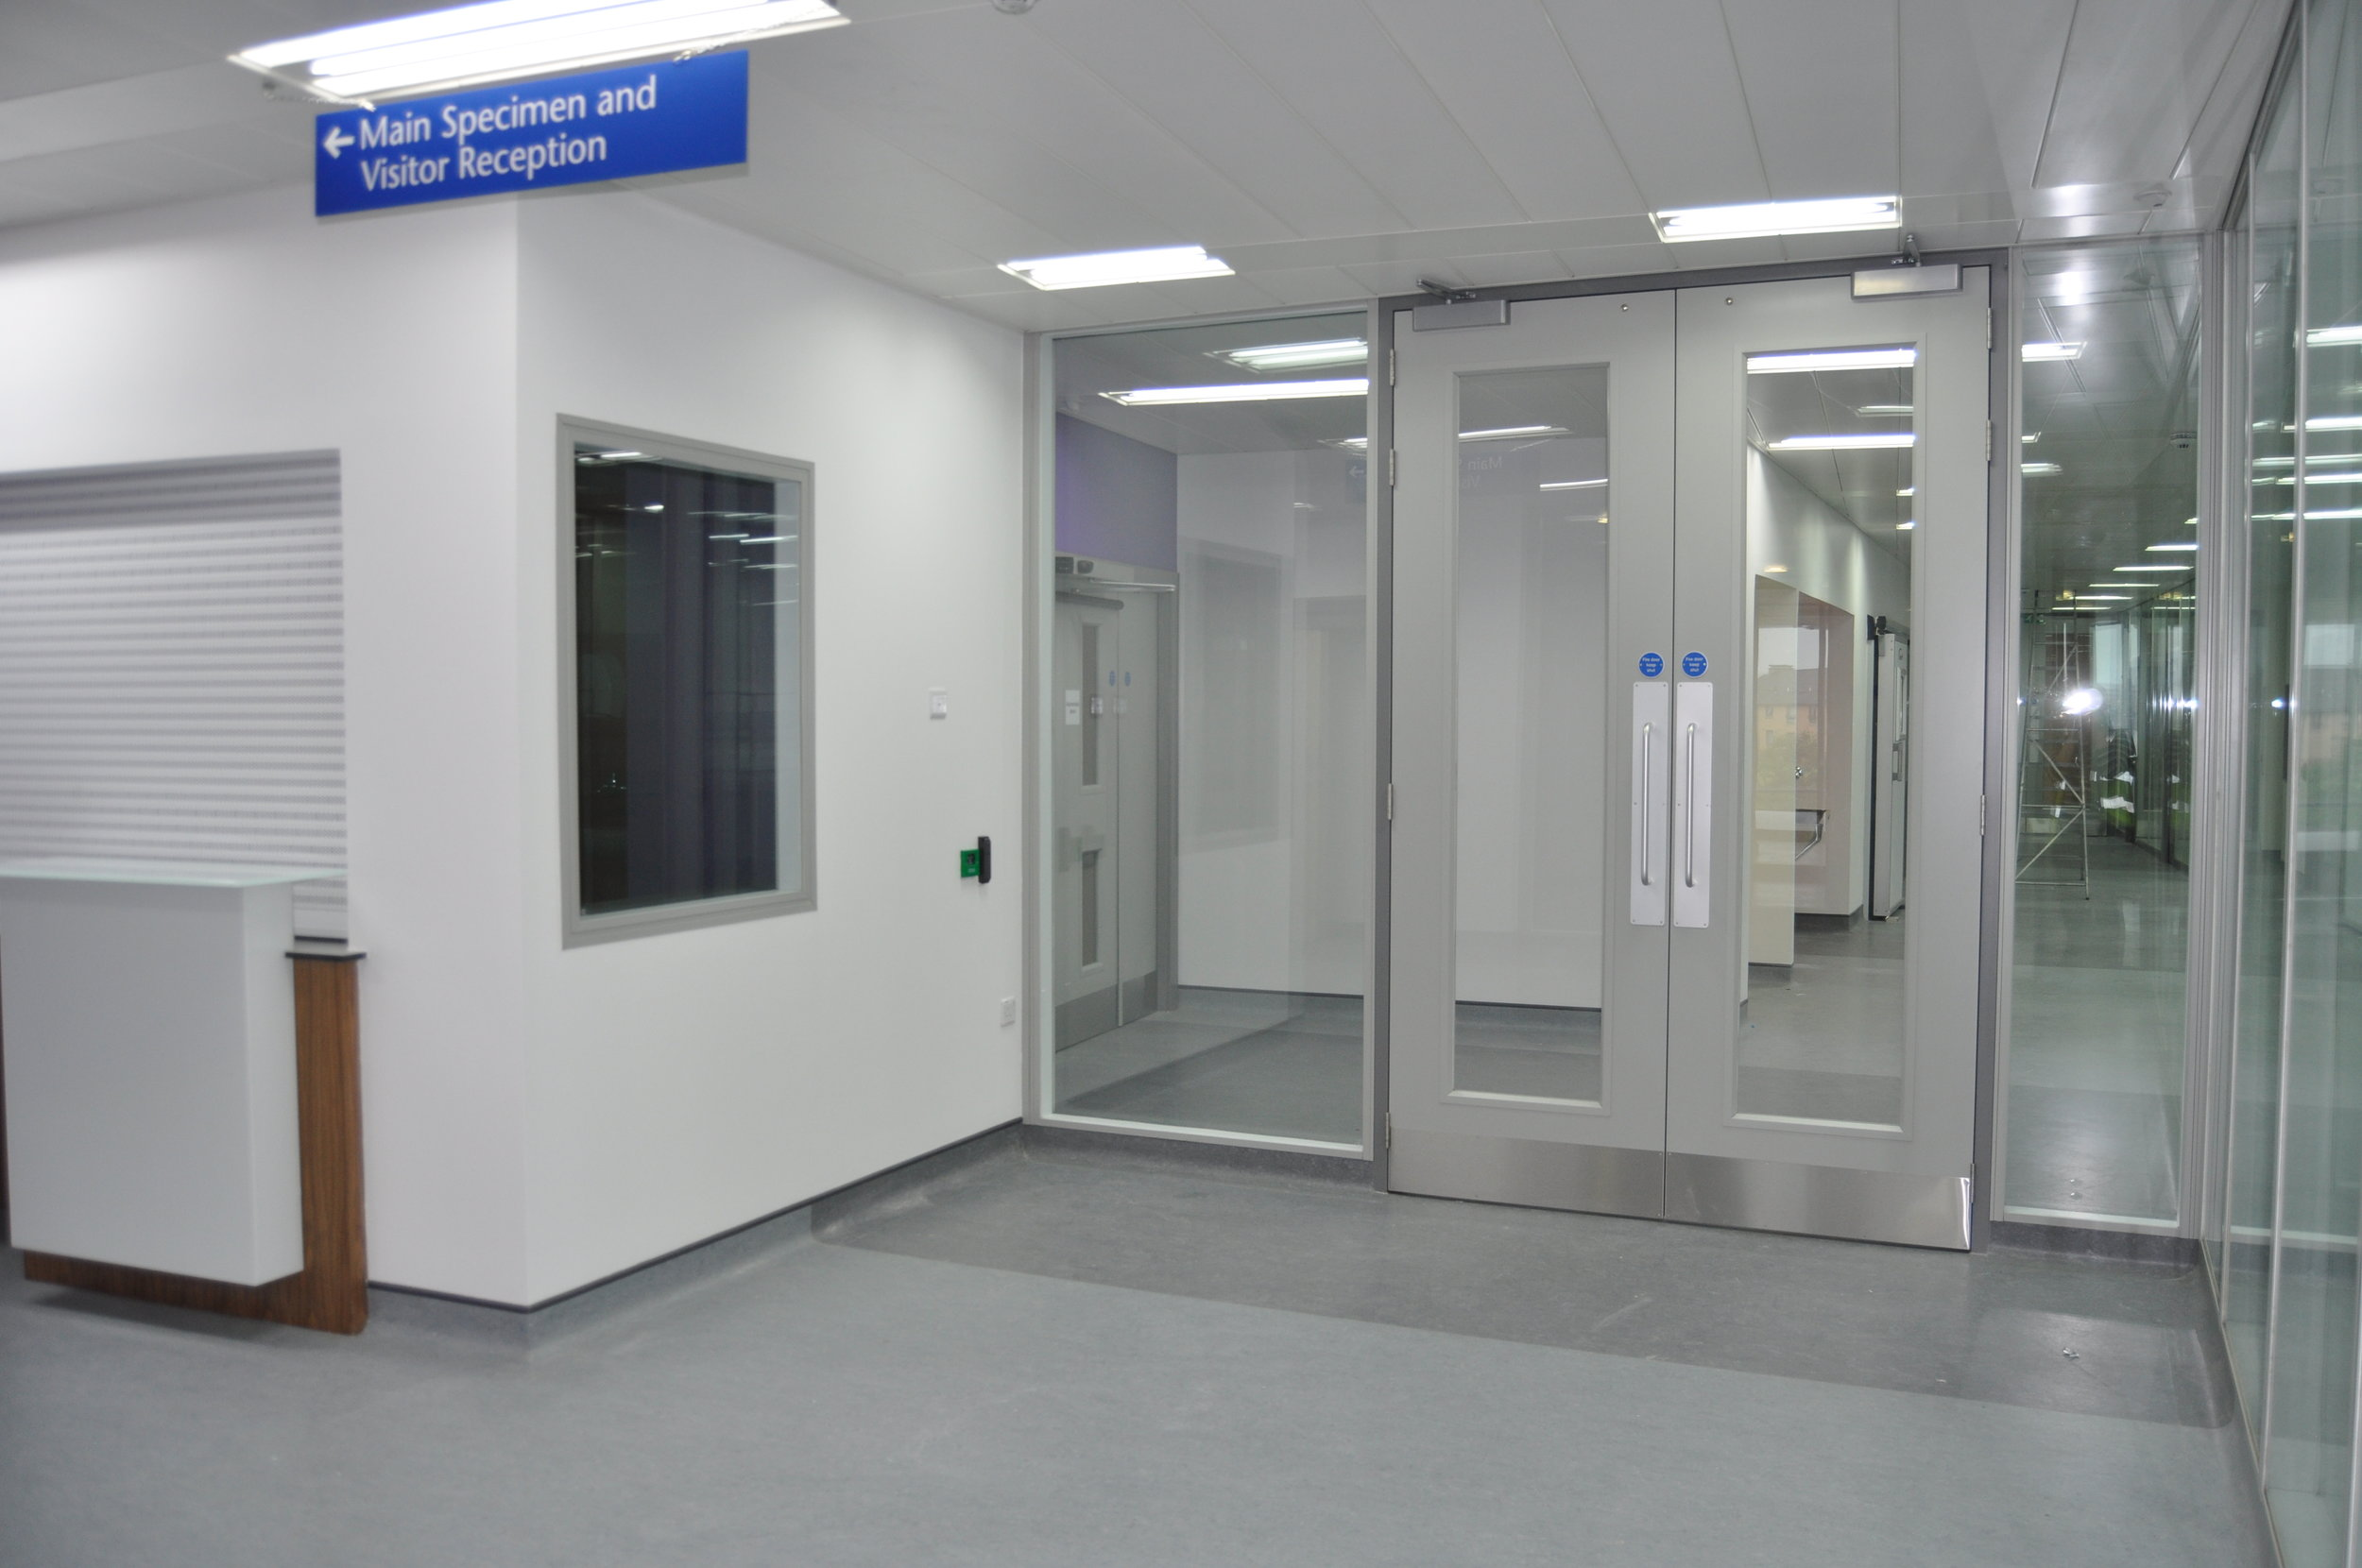 Glasgow Royal Infirmary - Glazed and Steel Partitions and Steel Doors